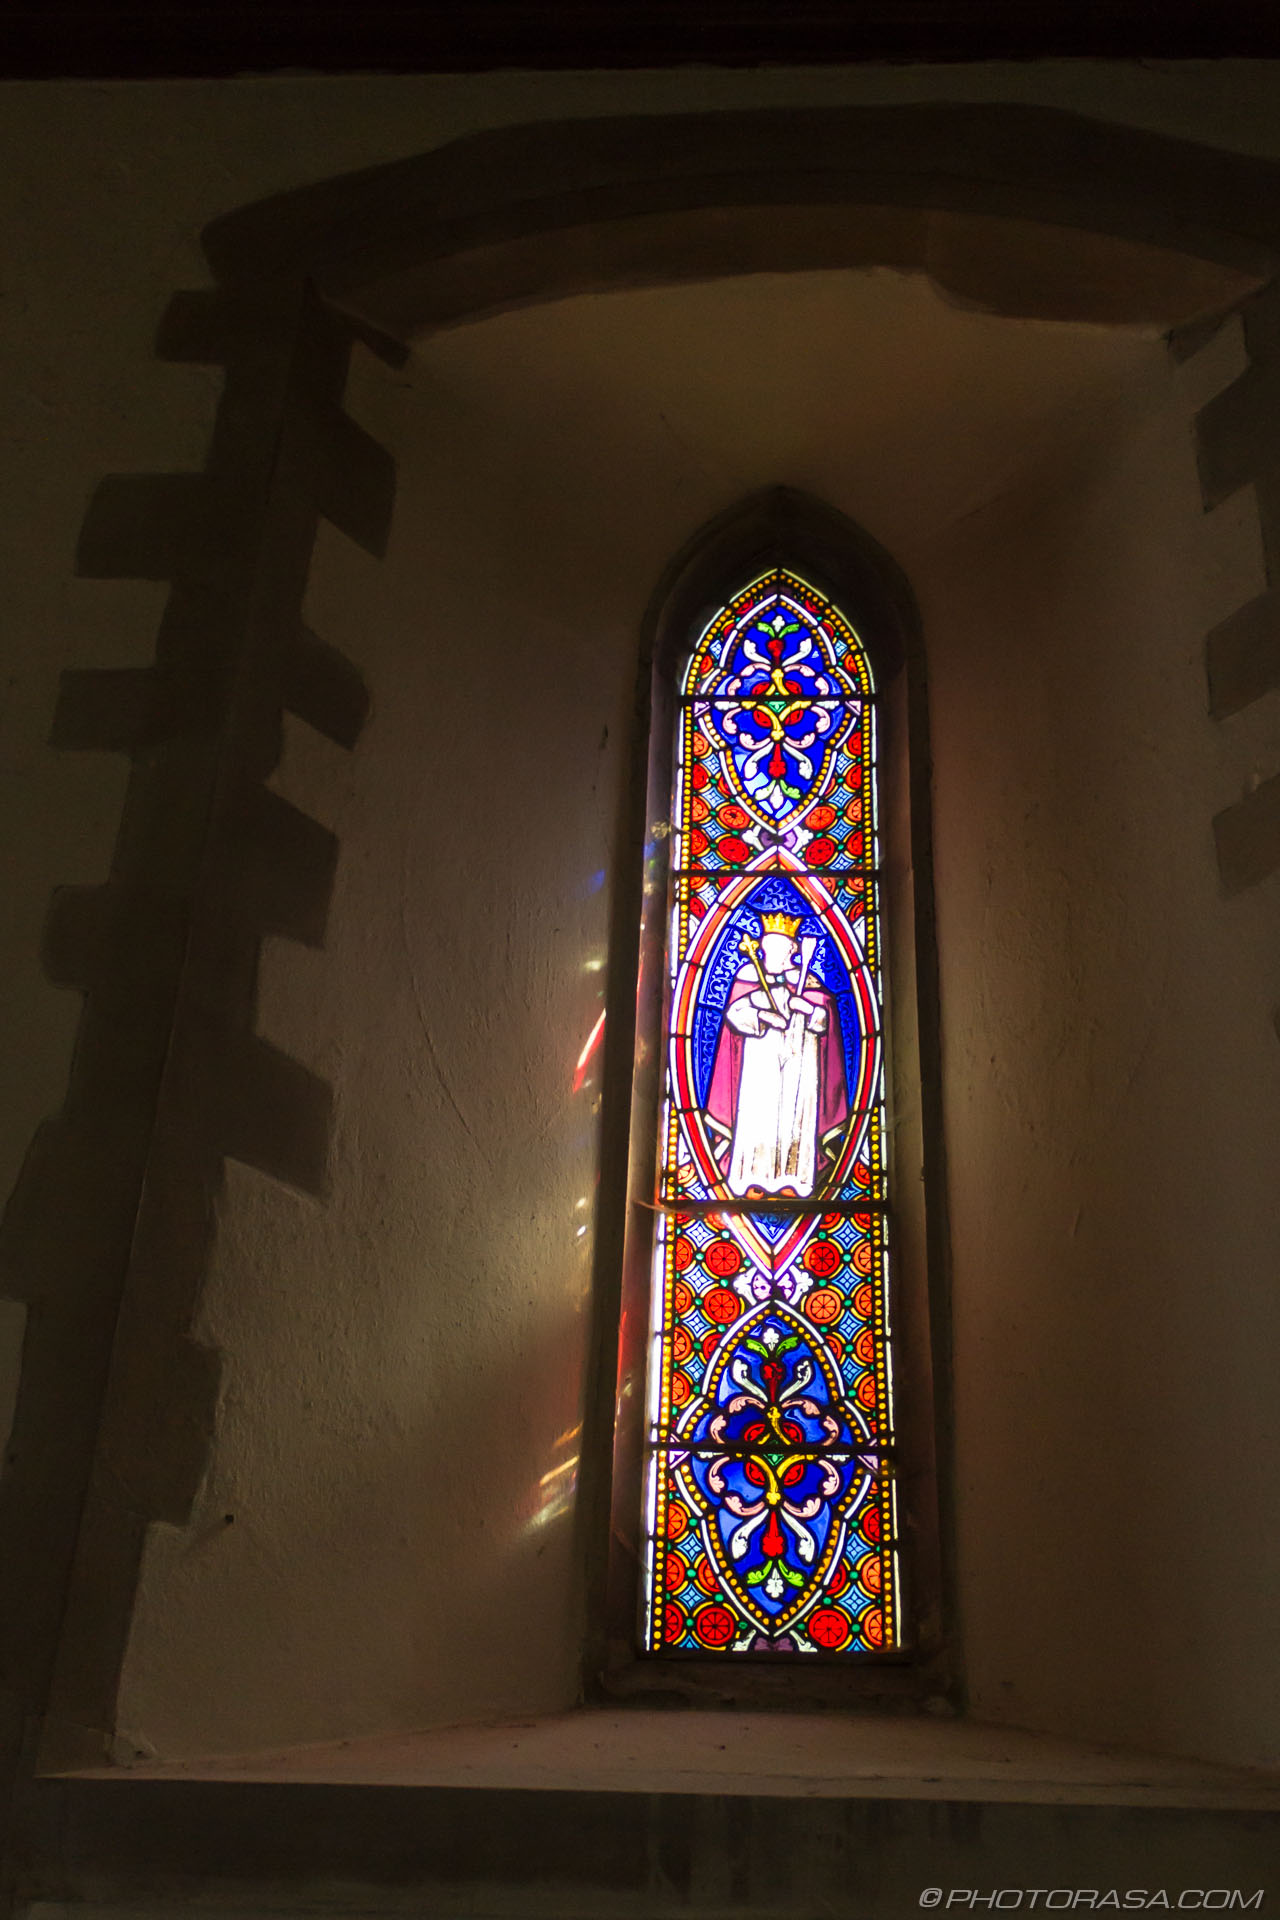 http://photorasa.com/st-marys-church-in-lenham/narrow-slit-stained-glass-with-light-shining-through/